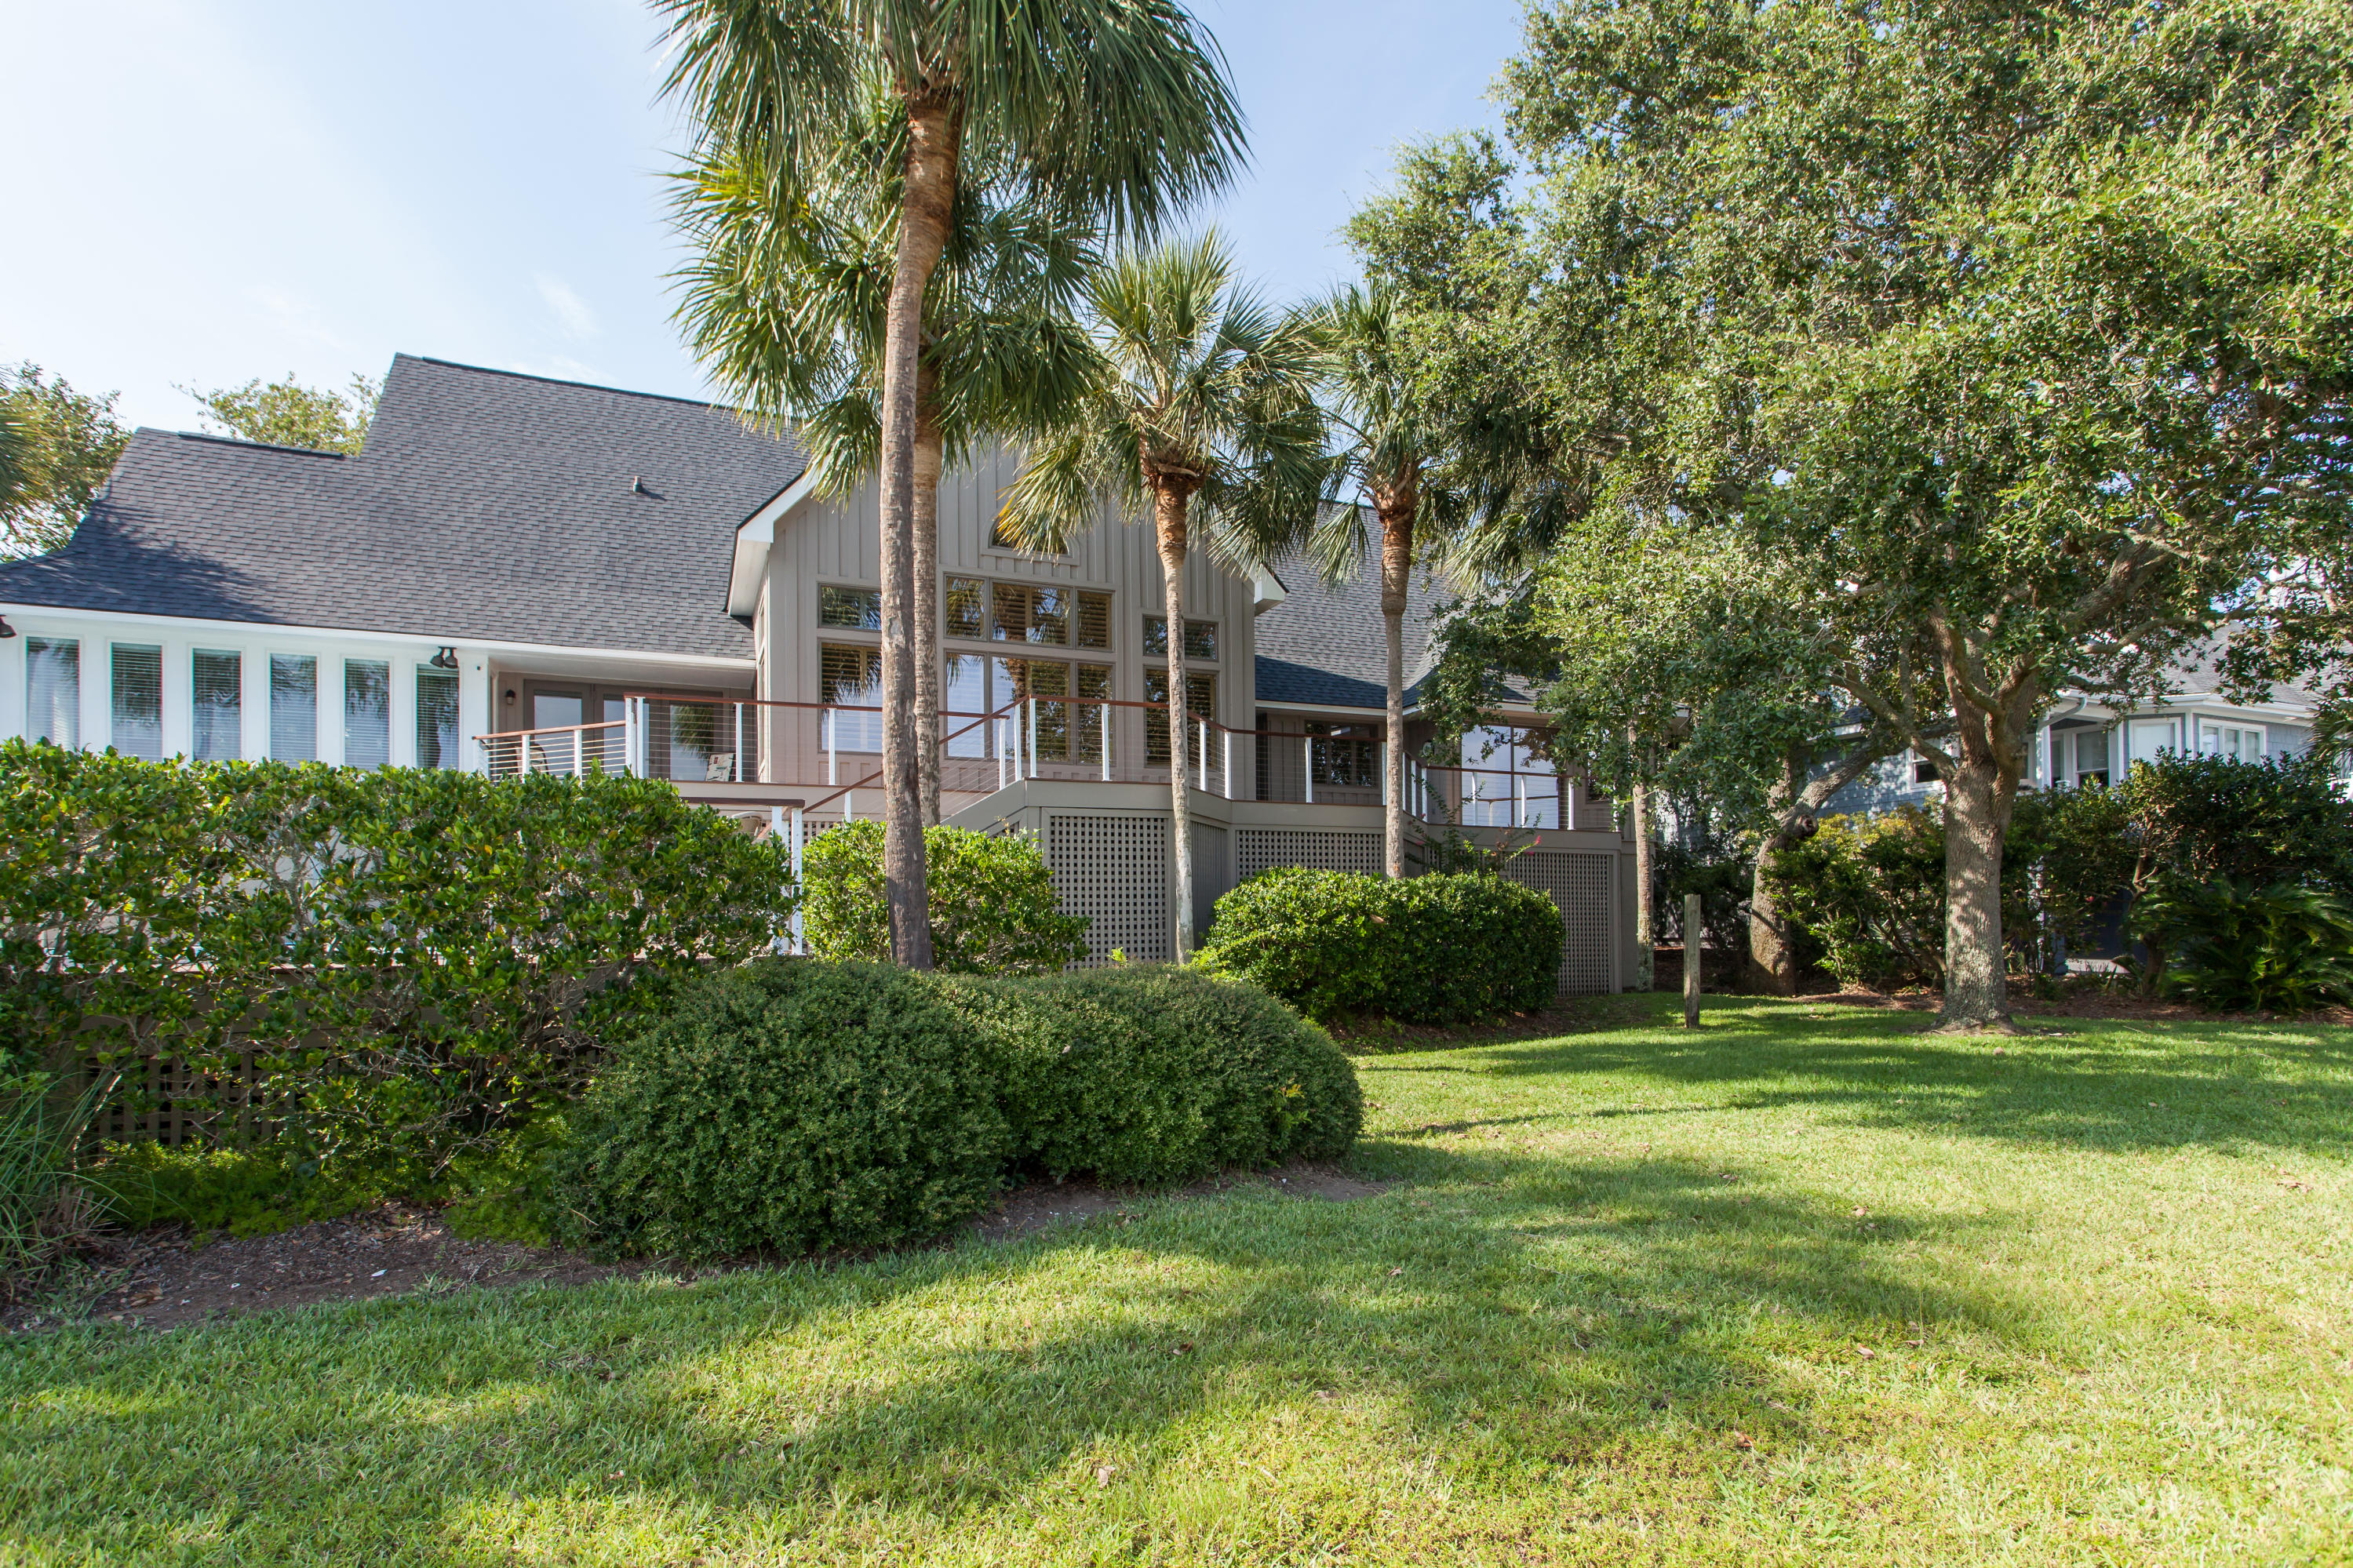 Wild Dunes Homes For Sale - 47 Waterway Island, Isle of Palms, SC - 2